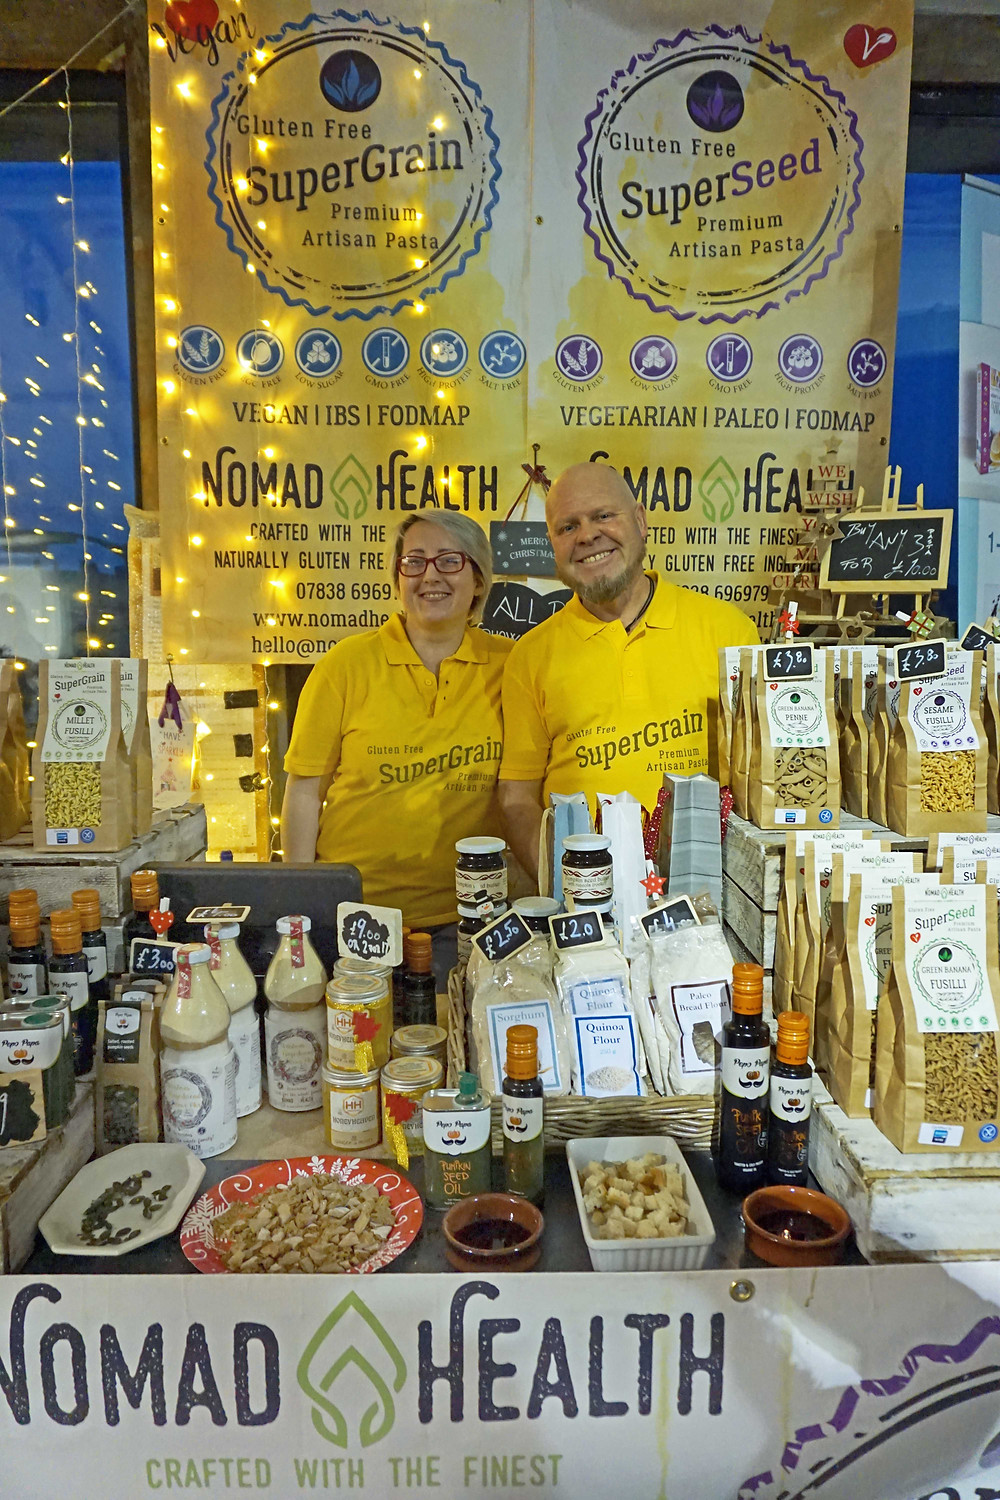 Free From Festival in England - Normad Health